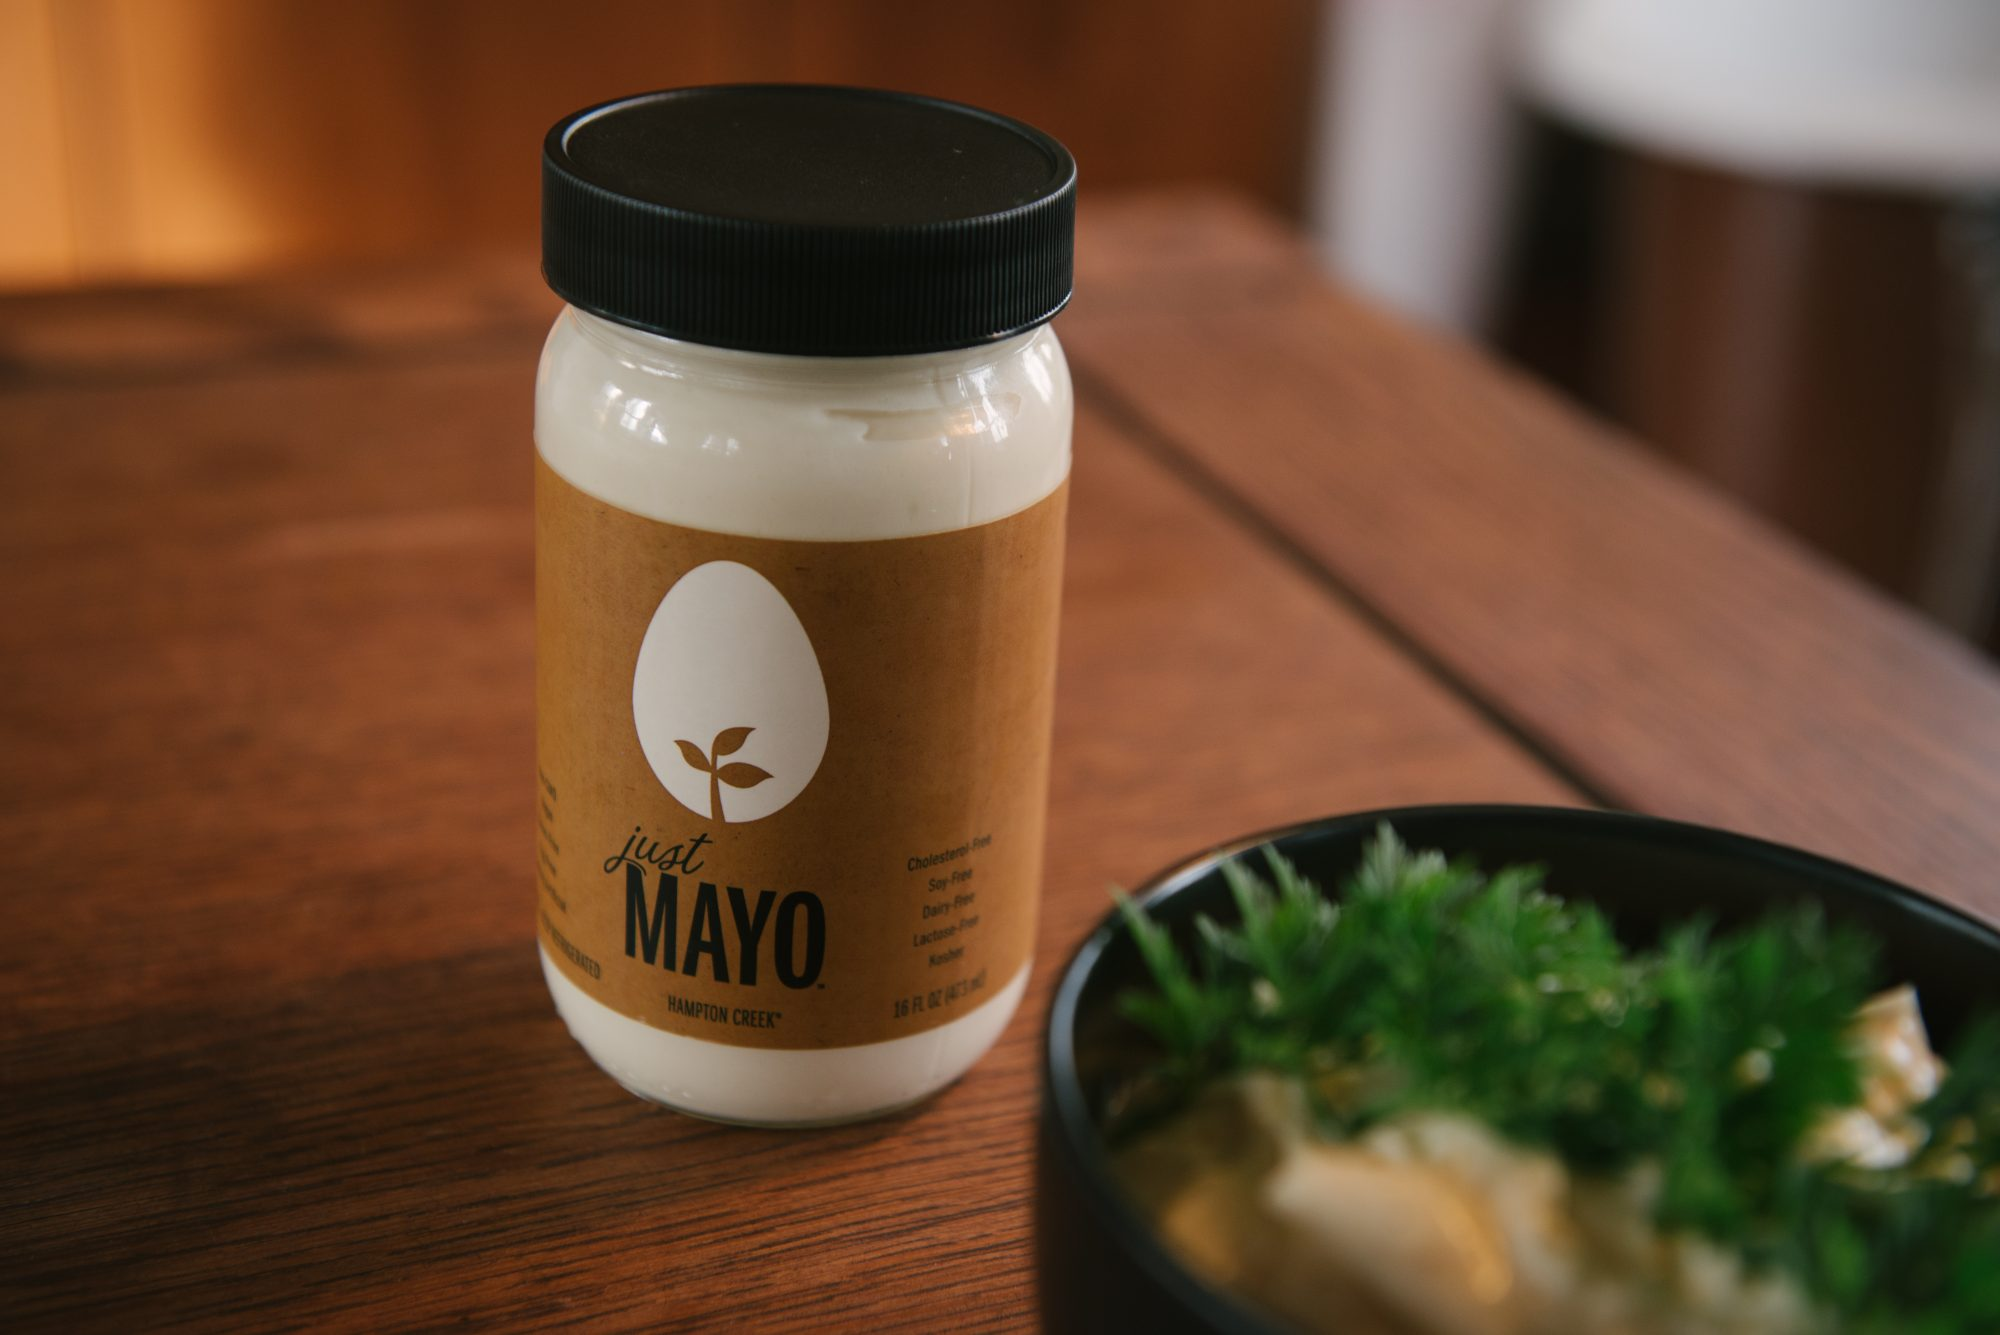 hampton-creek-foods_day1_-6.jpg